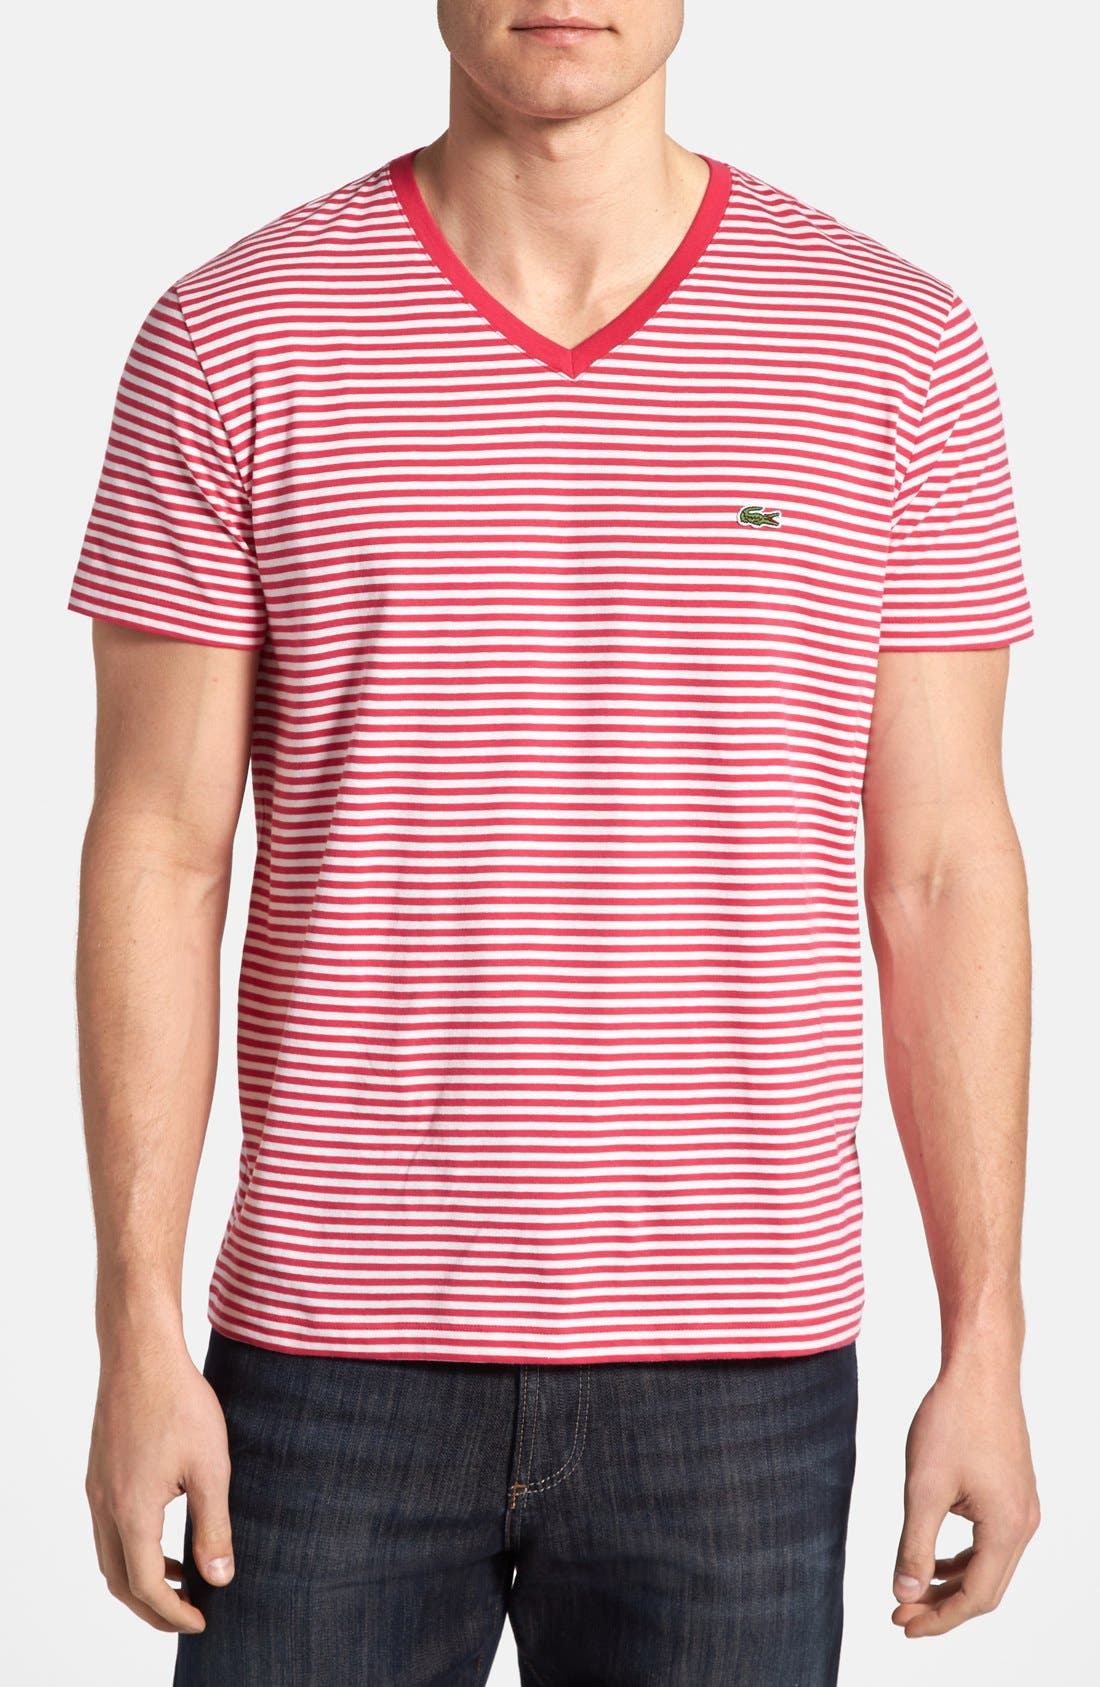 Alternate Image 1 Selected - Lacoste Heritage Fit Stripe Jersey V-Neck T-Shirt